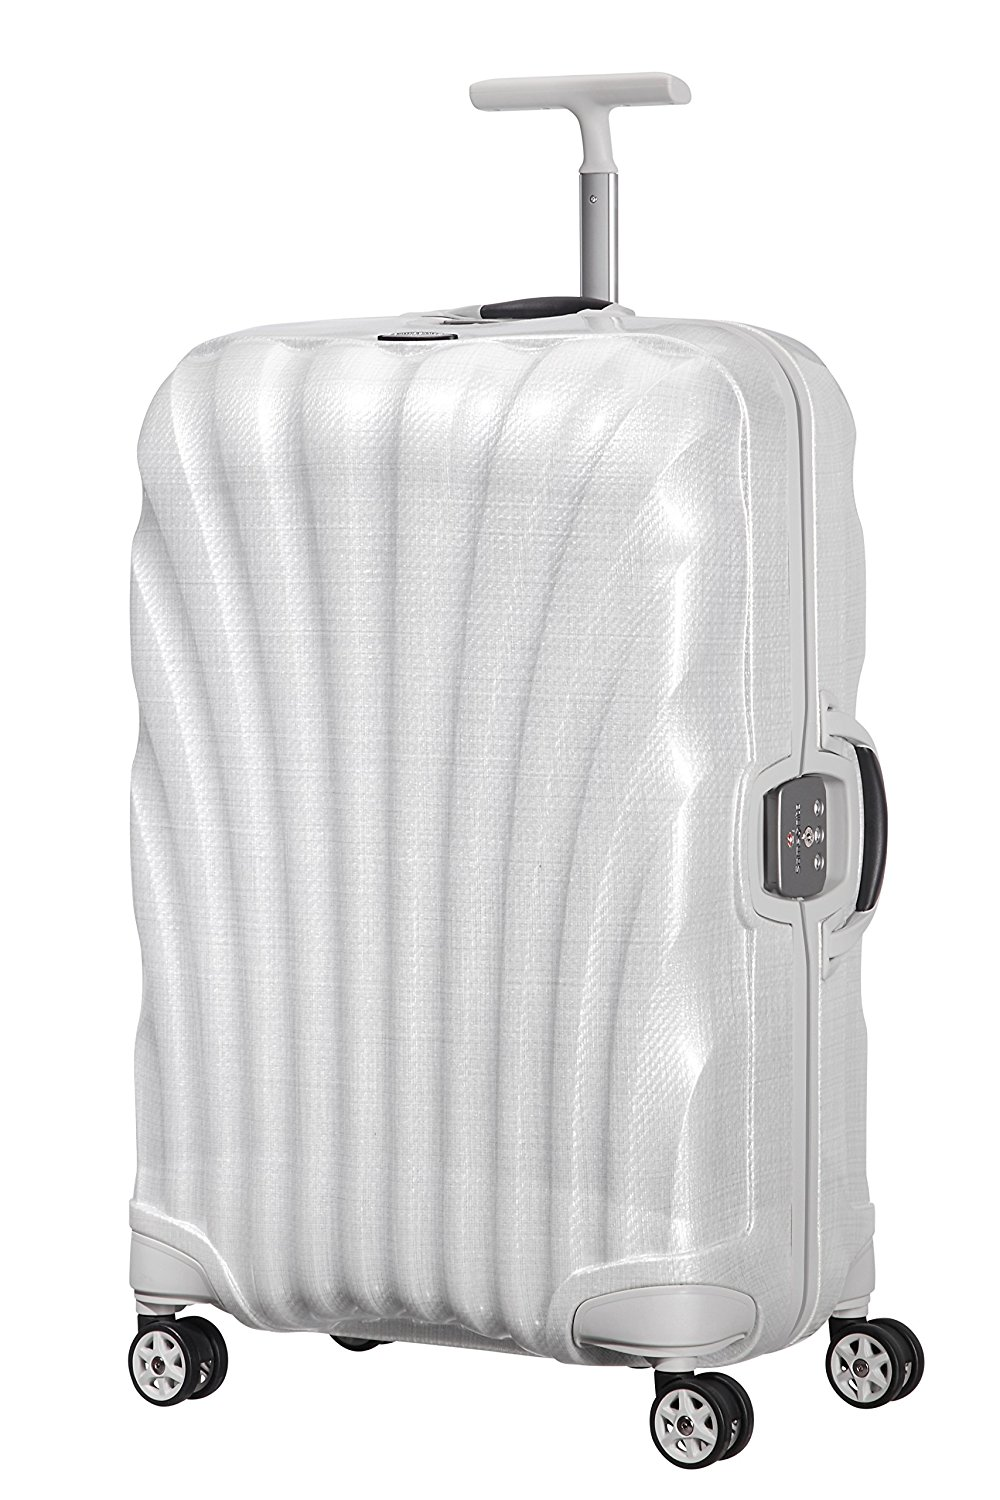 SAMSONITE Lite-Locked Spinner 69/25 Koffer, 69 cm, 68 L, Off White